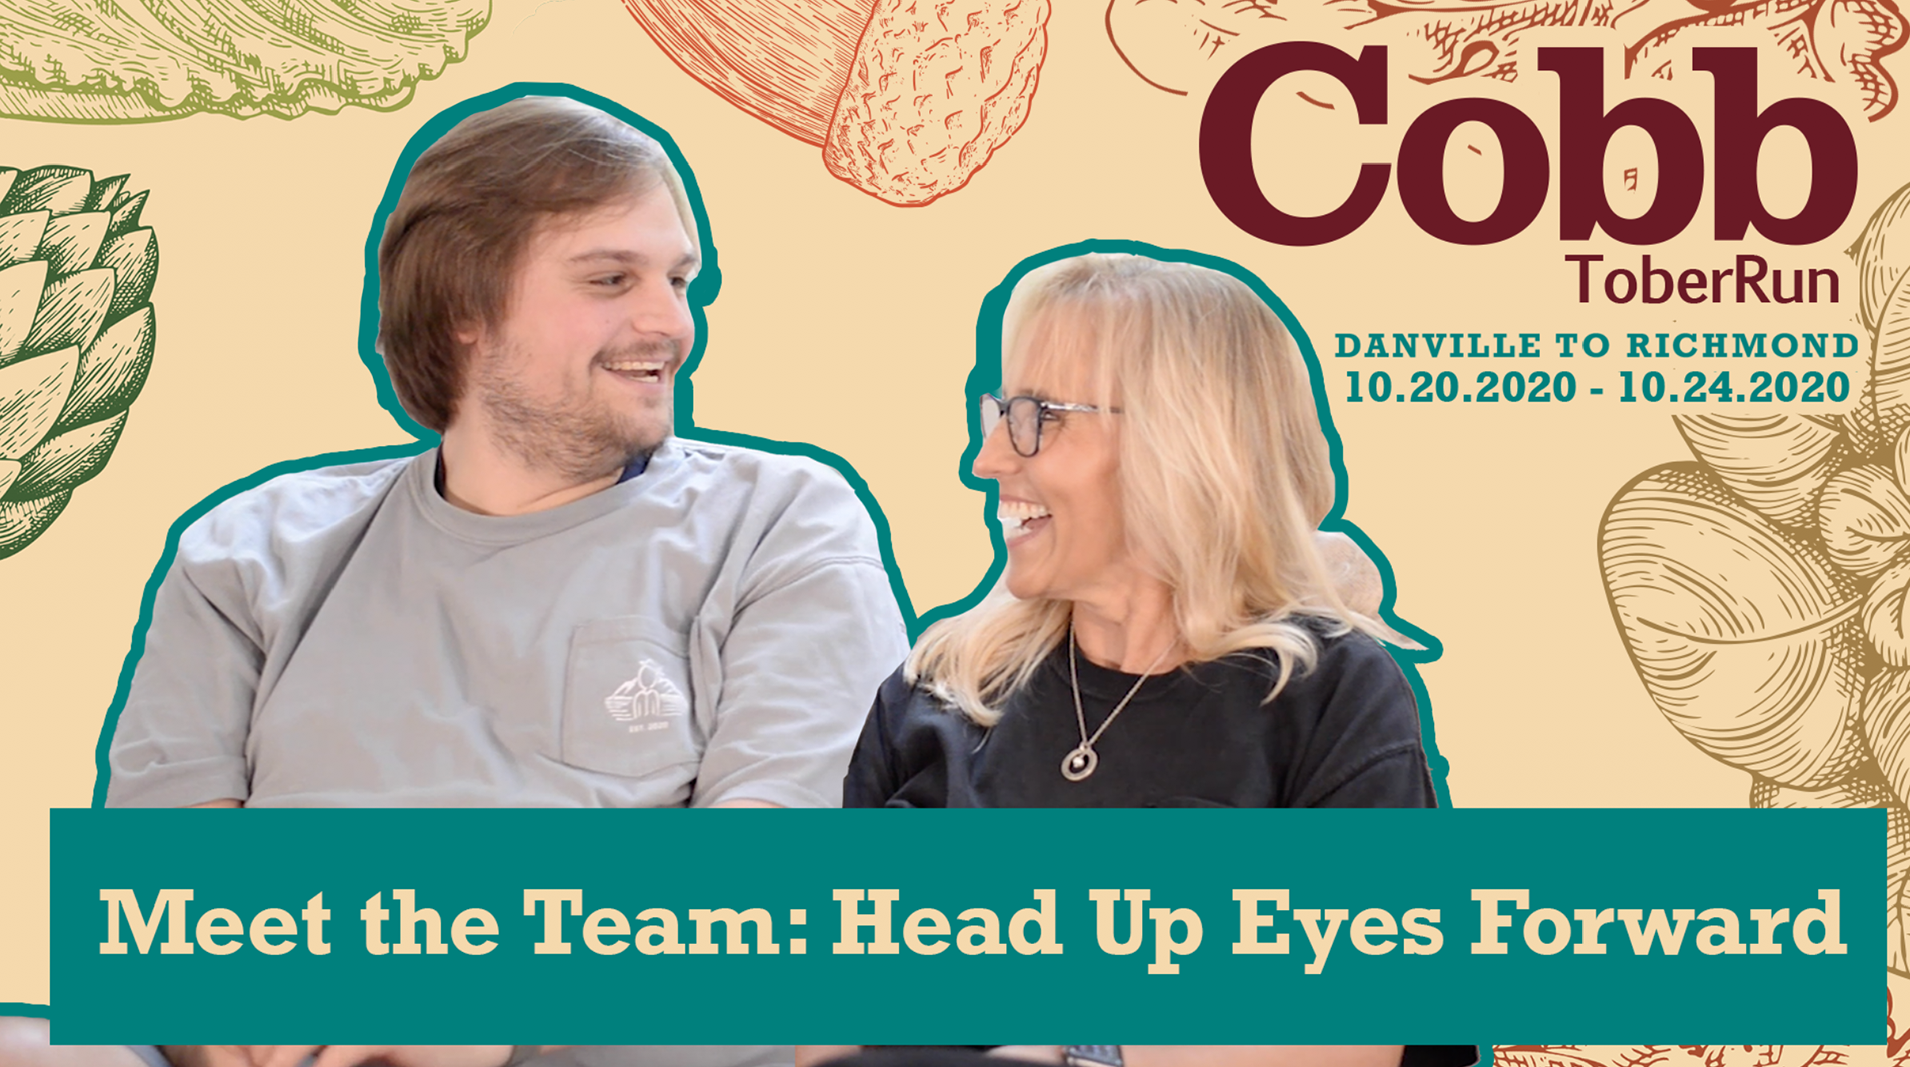 CobbtoberRun 2020 Meet the Team- Head Up Eyes Forward